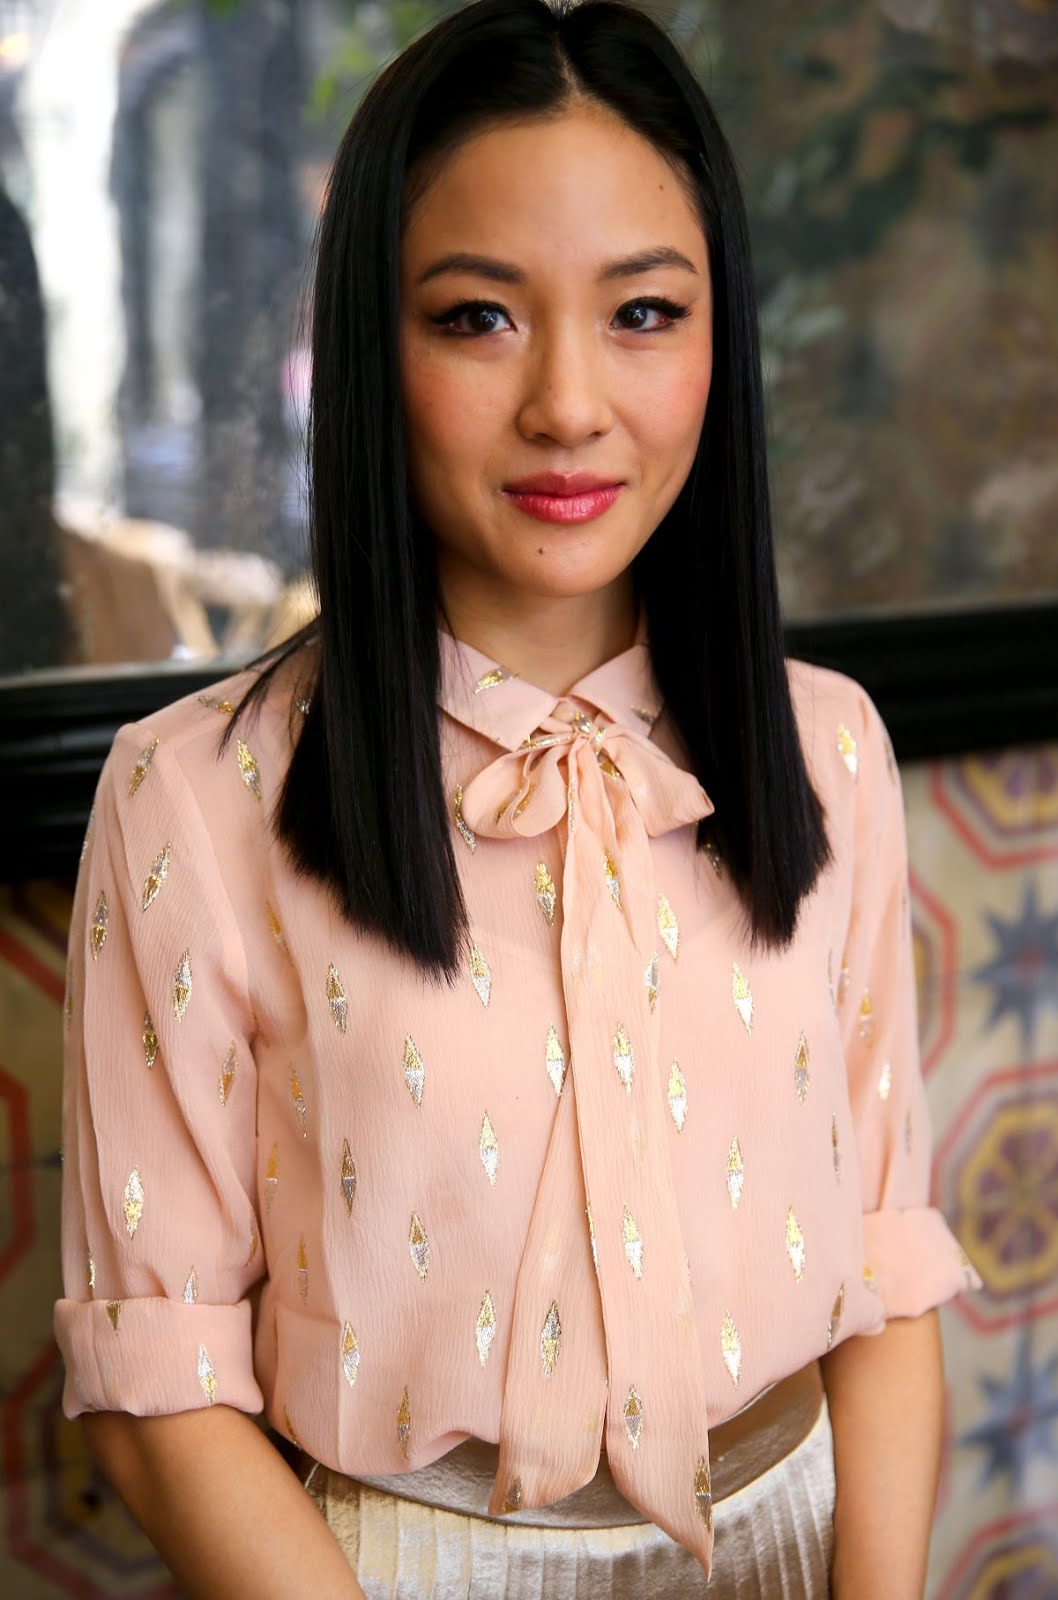 HD Wallpaper of Sexy Constance Wu